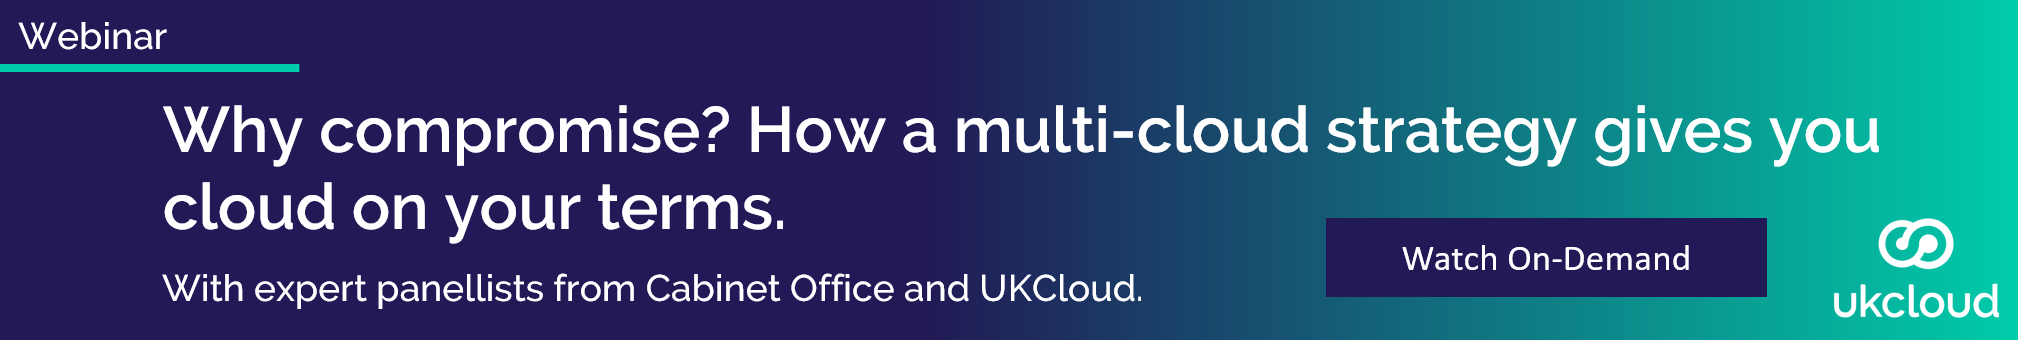 Webinar: Why compromise? How a multi-cloud strategy gives you cloud on your terms. Watch now.